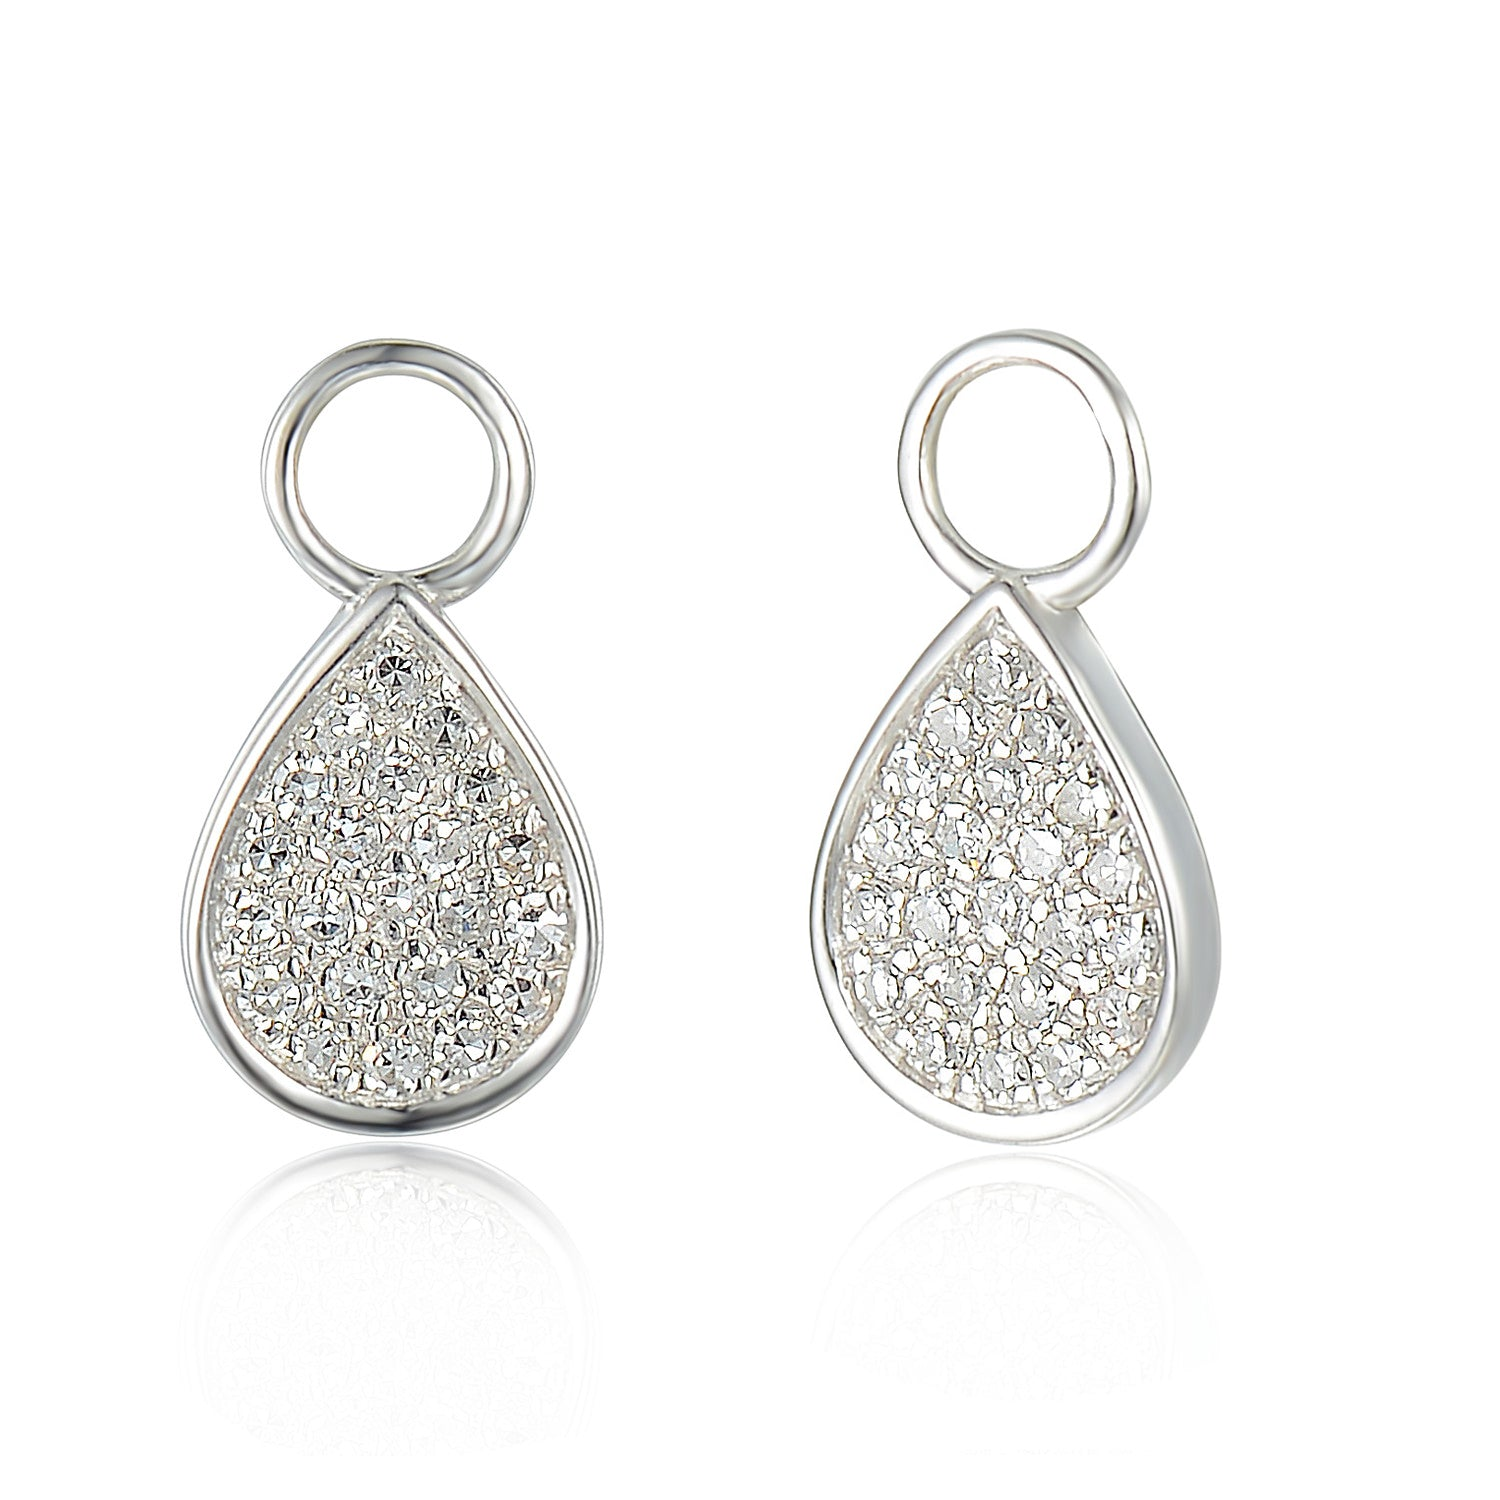 f6bf5f0e3 ... 18ct White Gold Diamond Sleeper Hoop With Hanging Interchangeable Pear  Shape Charm ...